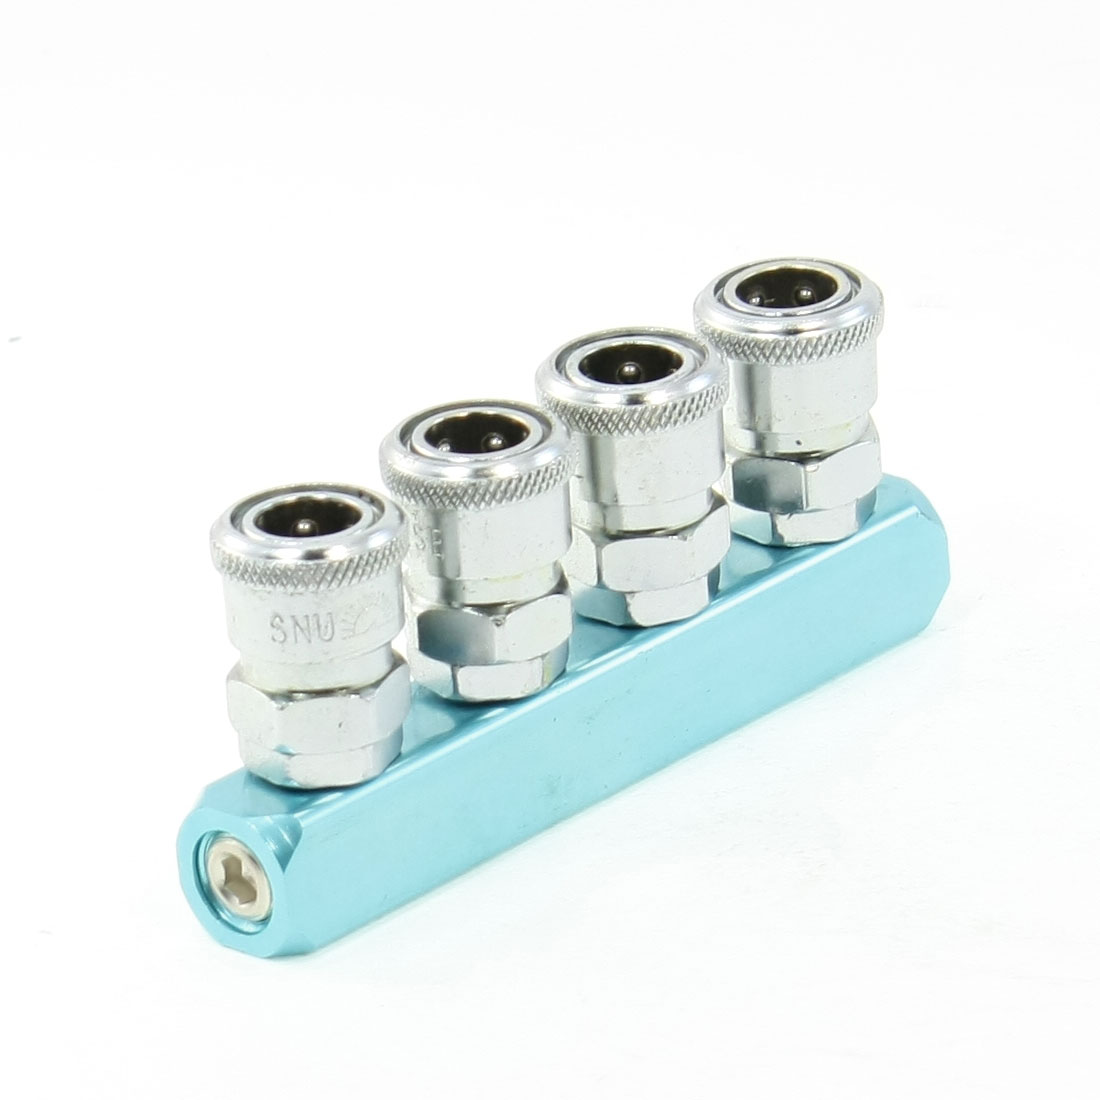 Turquoise 4 Way Air Hose Quick Connecting Coupler Connector